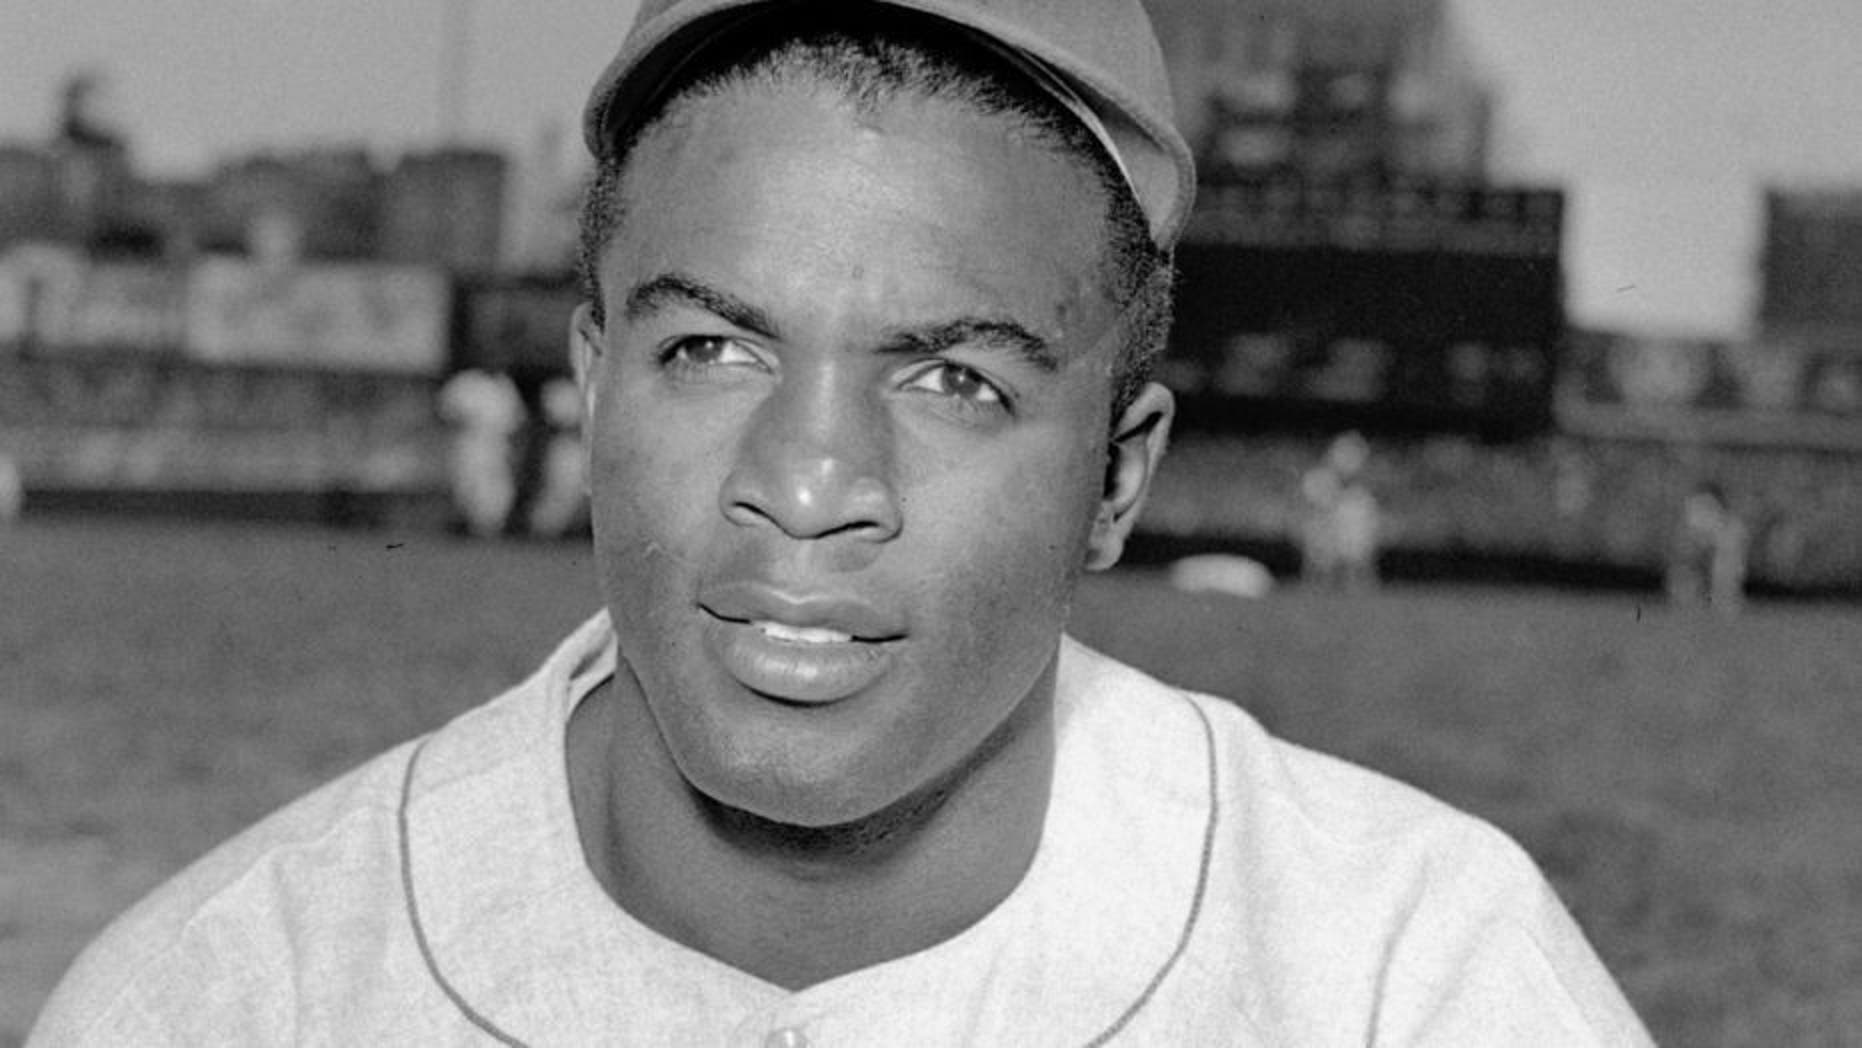 Westlake Legal Group JackieRobinson012320 This Day in History: Jan. 23 fox-news/us/this-day-in-history fox news fnc/us fnc article 48b0fd72-831d-5226-bcc7-00e40f43fcf2